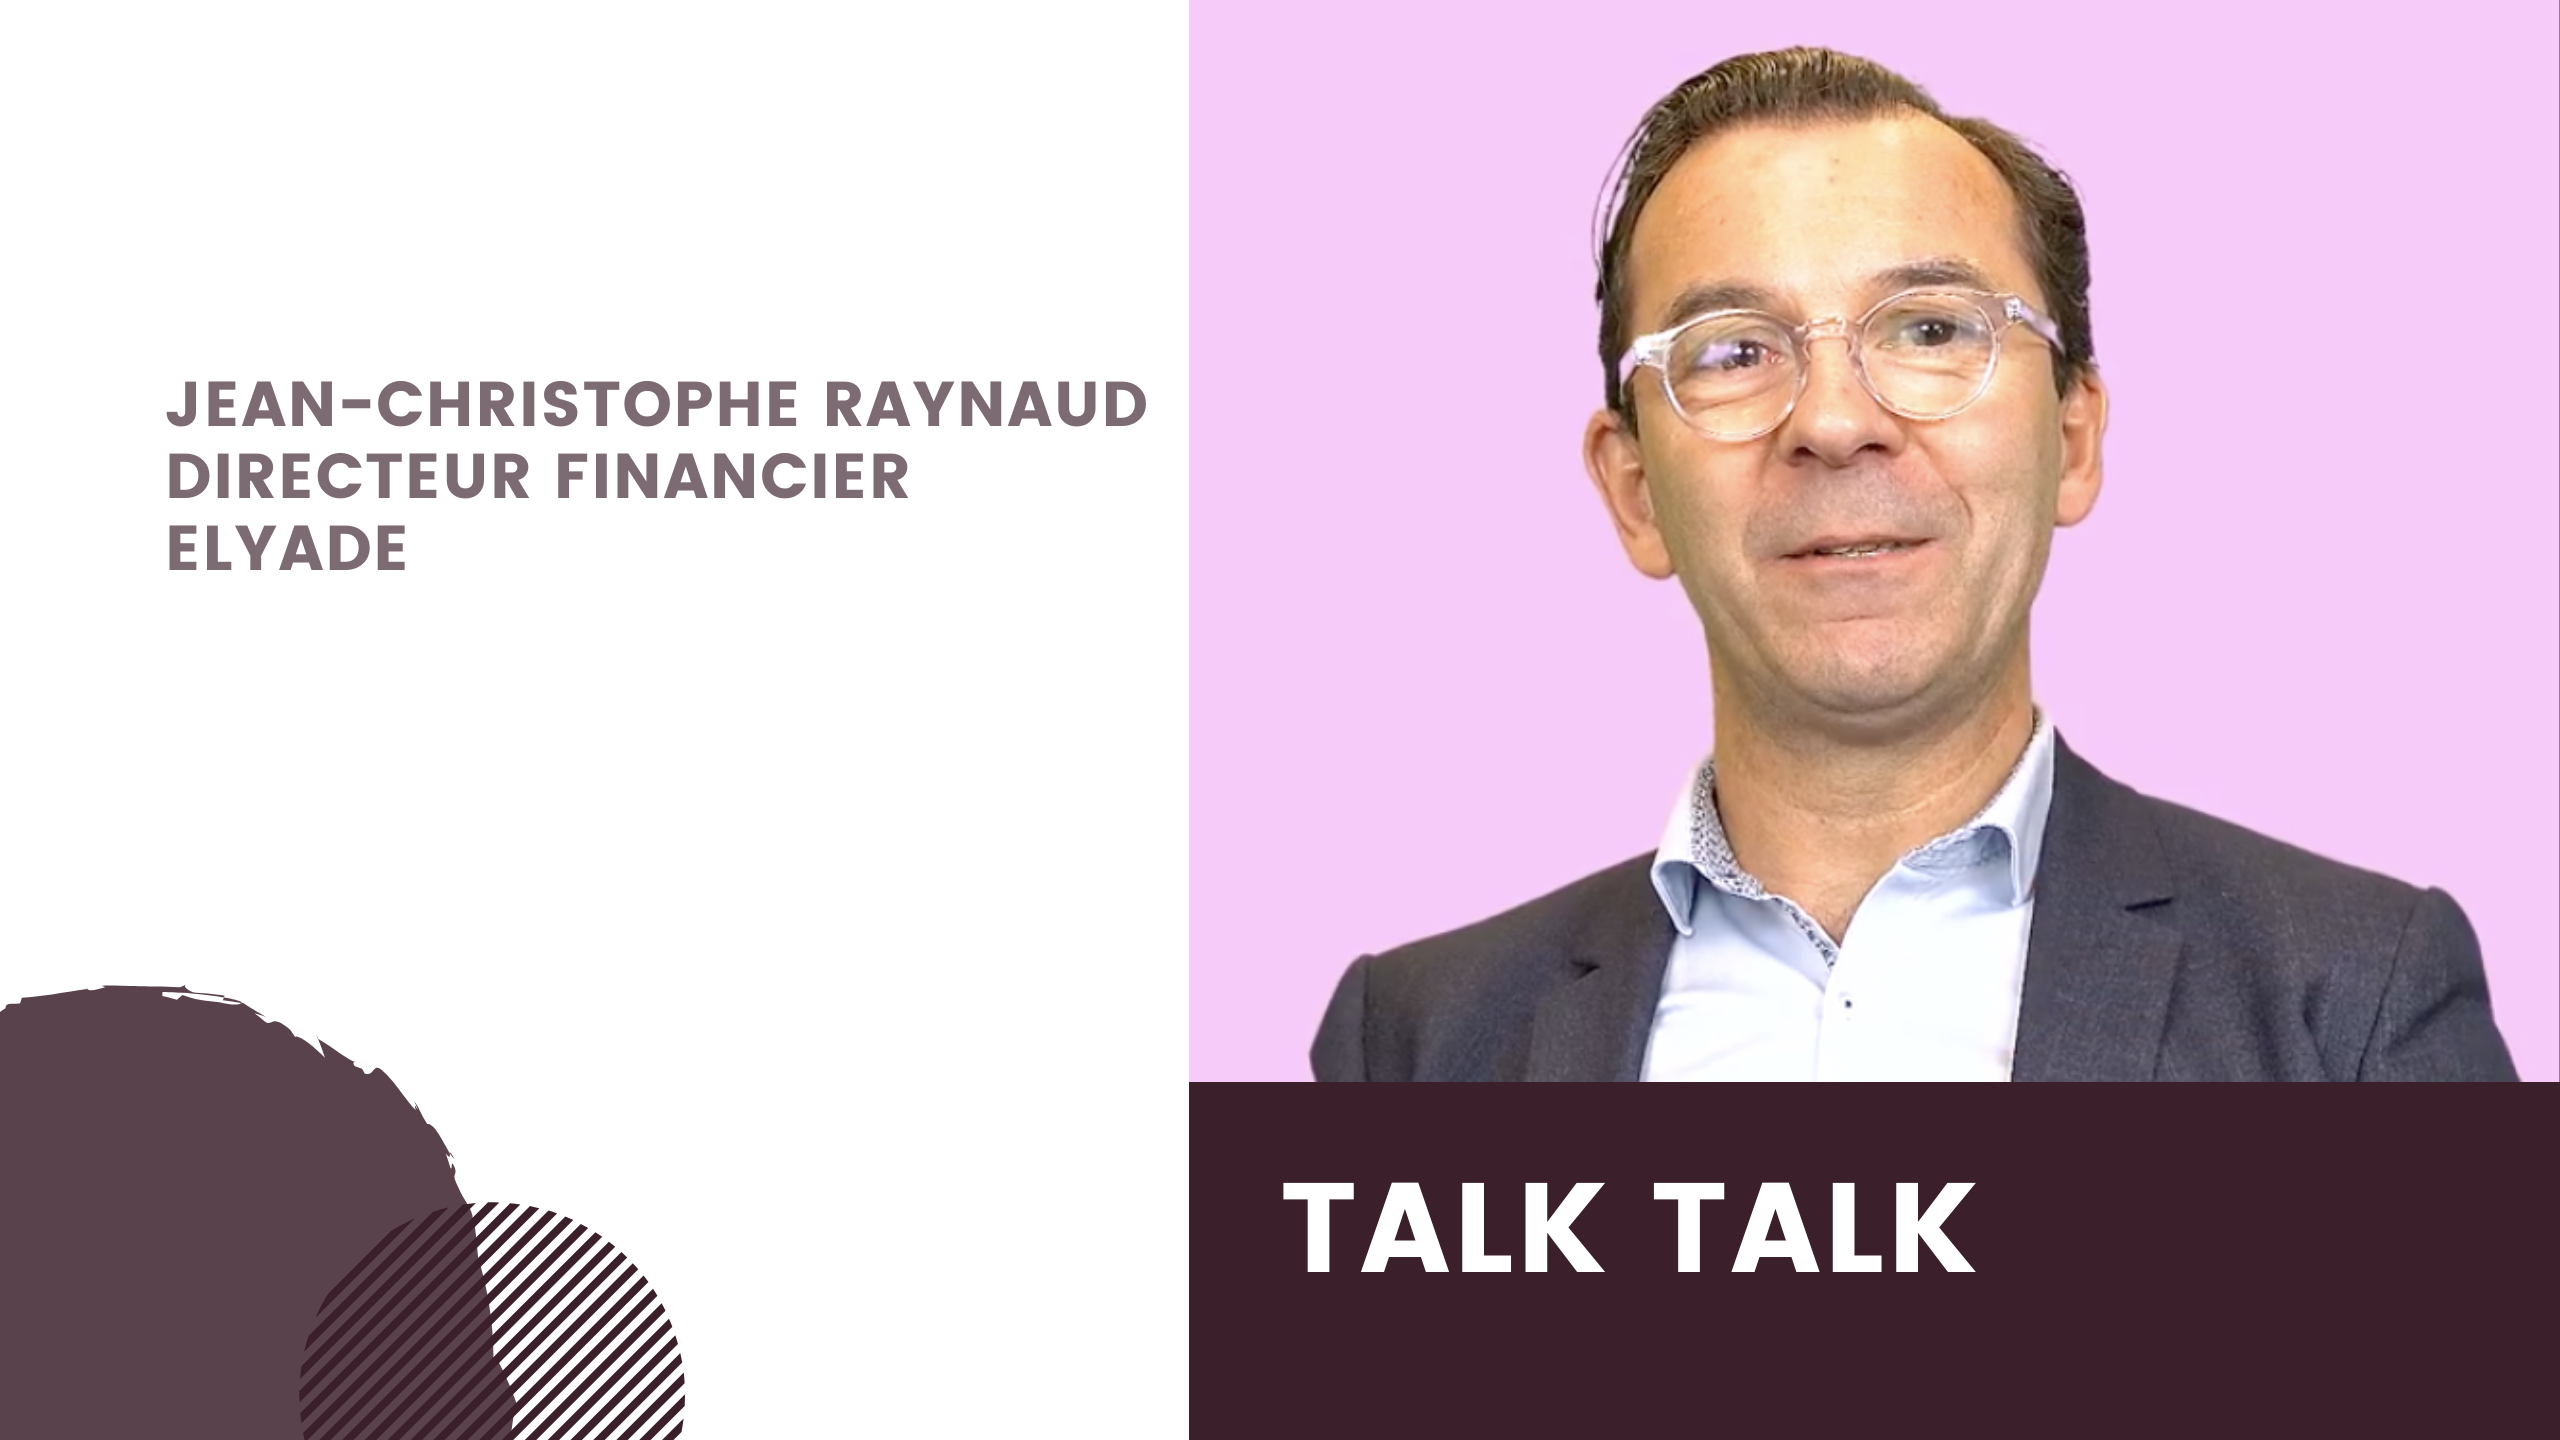 Talk Talk de Jean-Christophe Raynaud, Directeur Financier du Groupe Elyade